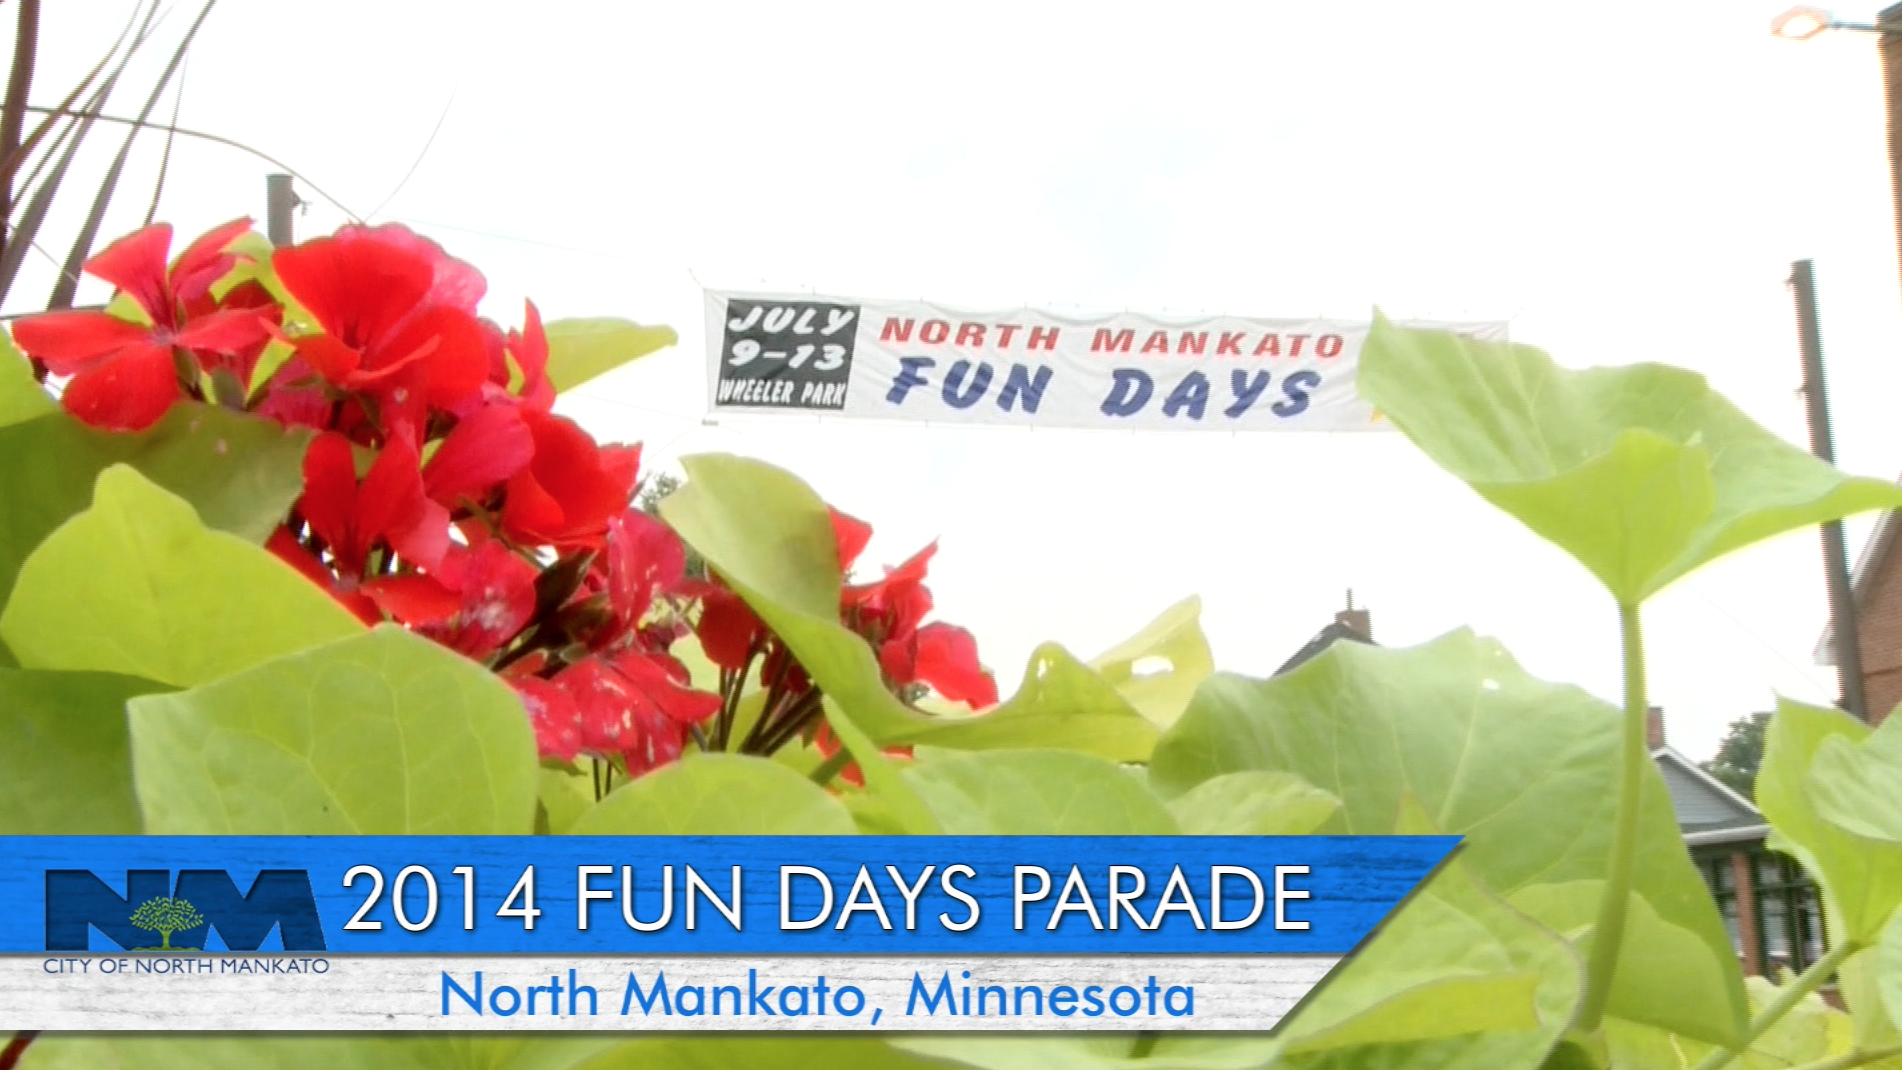 North Mankato Fun Days Parade